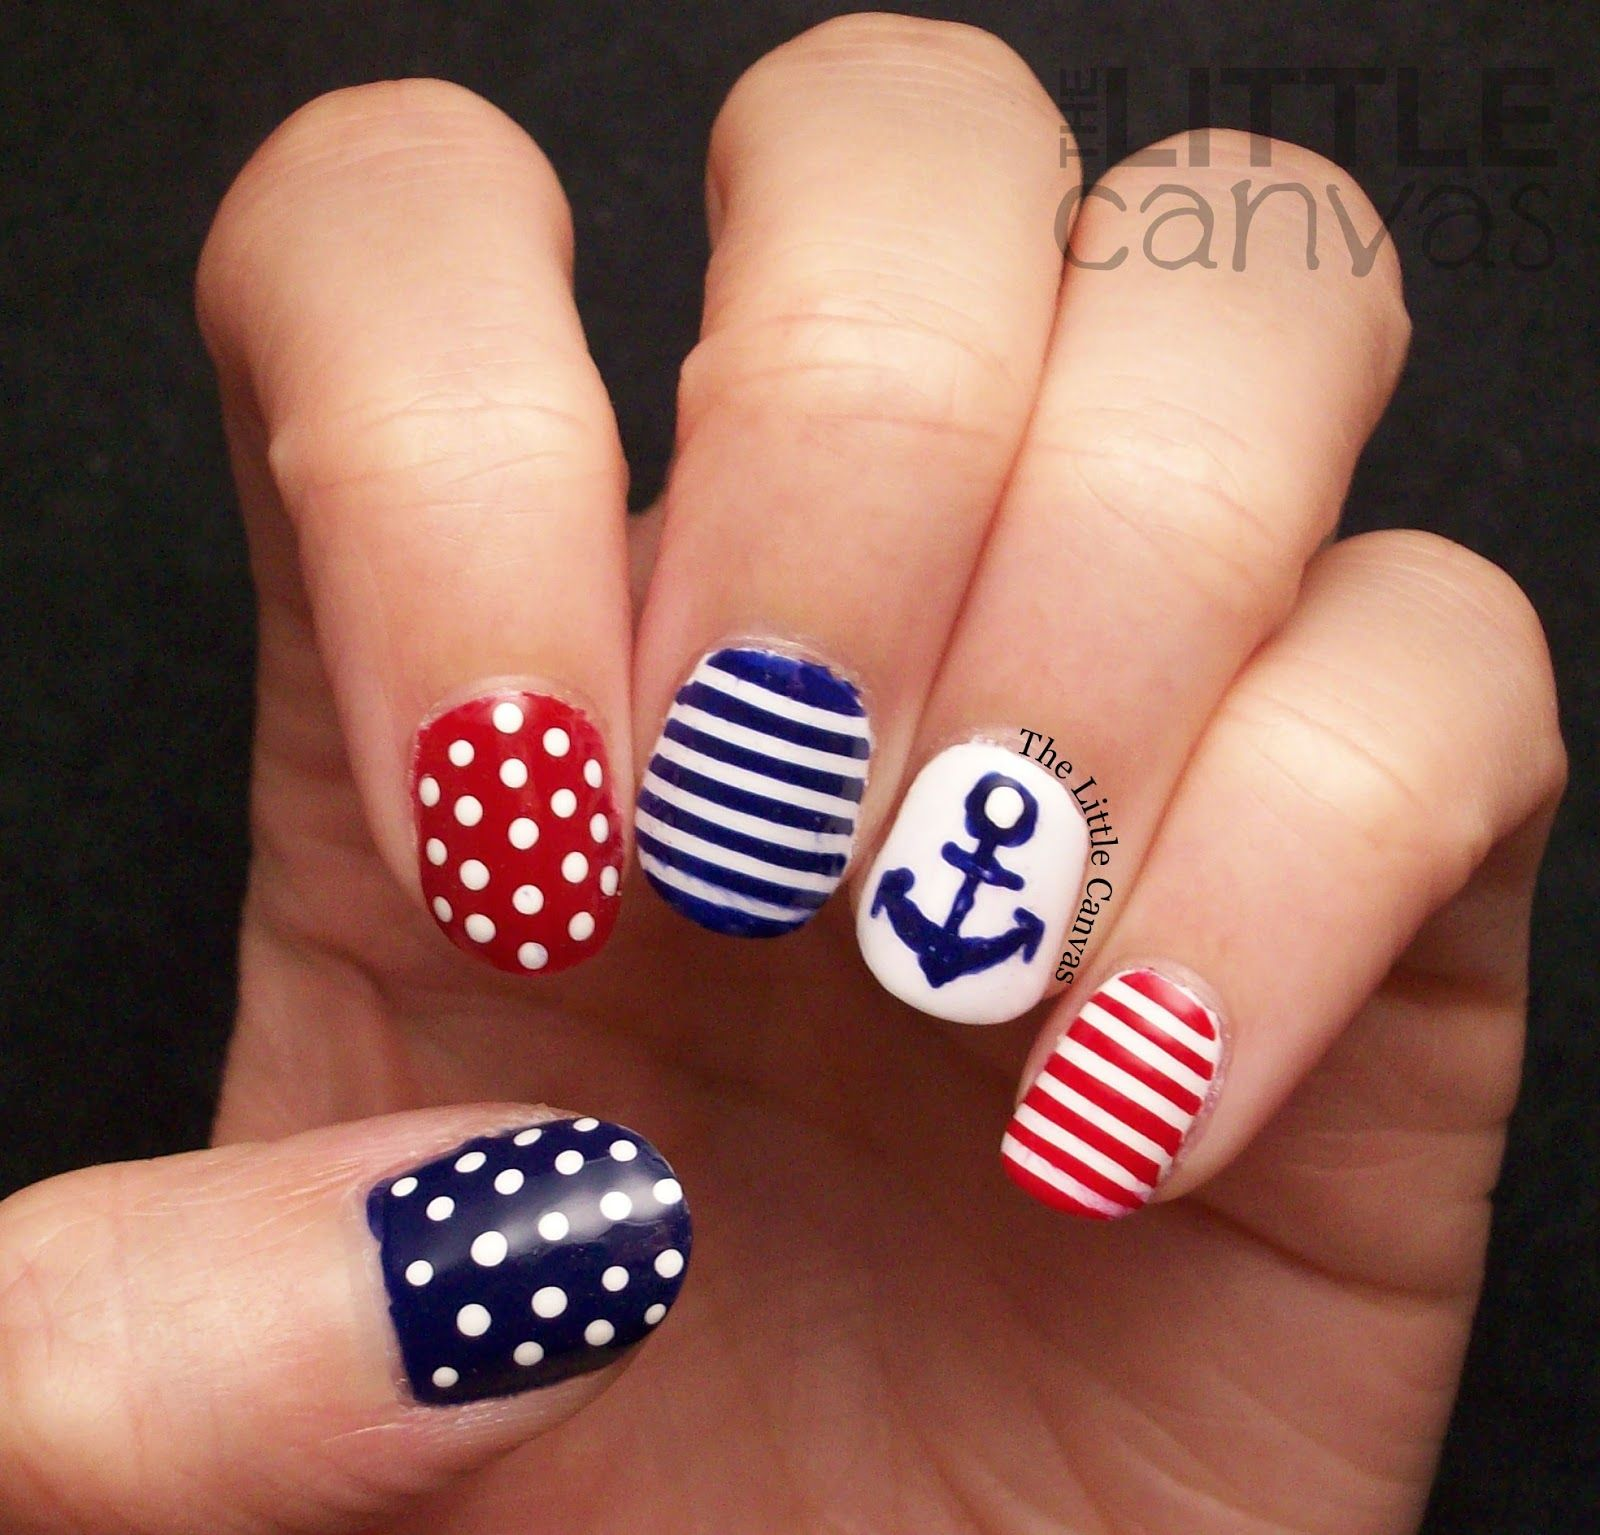 Fine Claire Nail Polish Thick Where To Buy Dog Nail Polish Square Cheap Wholesale Nail Polish Opi Mint Green Nail Polish Old How Do Nail Art BluePictures Of Nail Art 1000  Images About Nail Art: Nautical On Pinterest